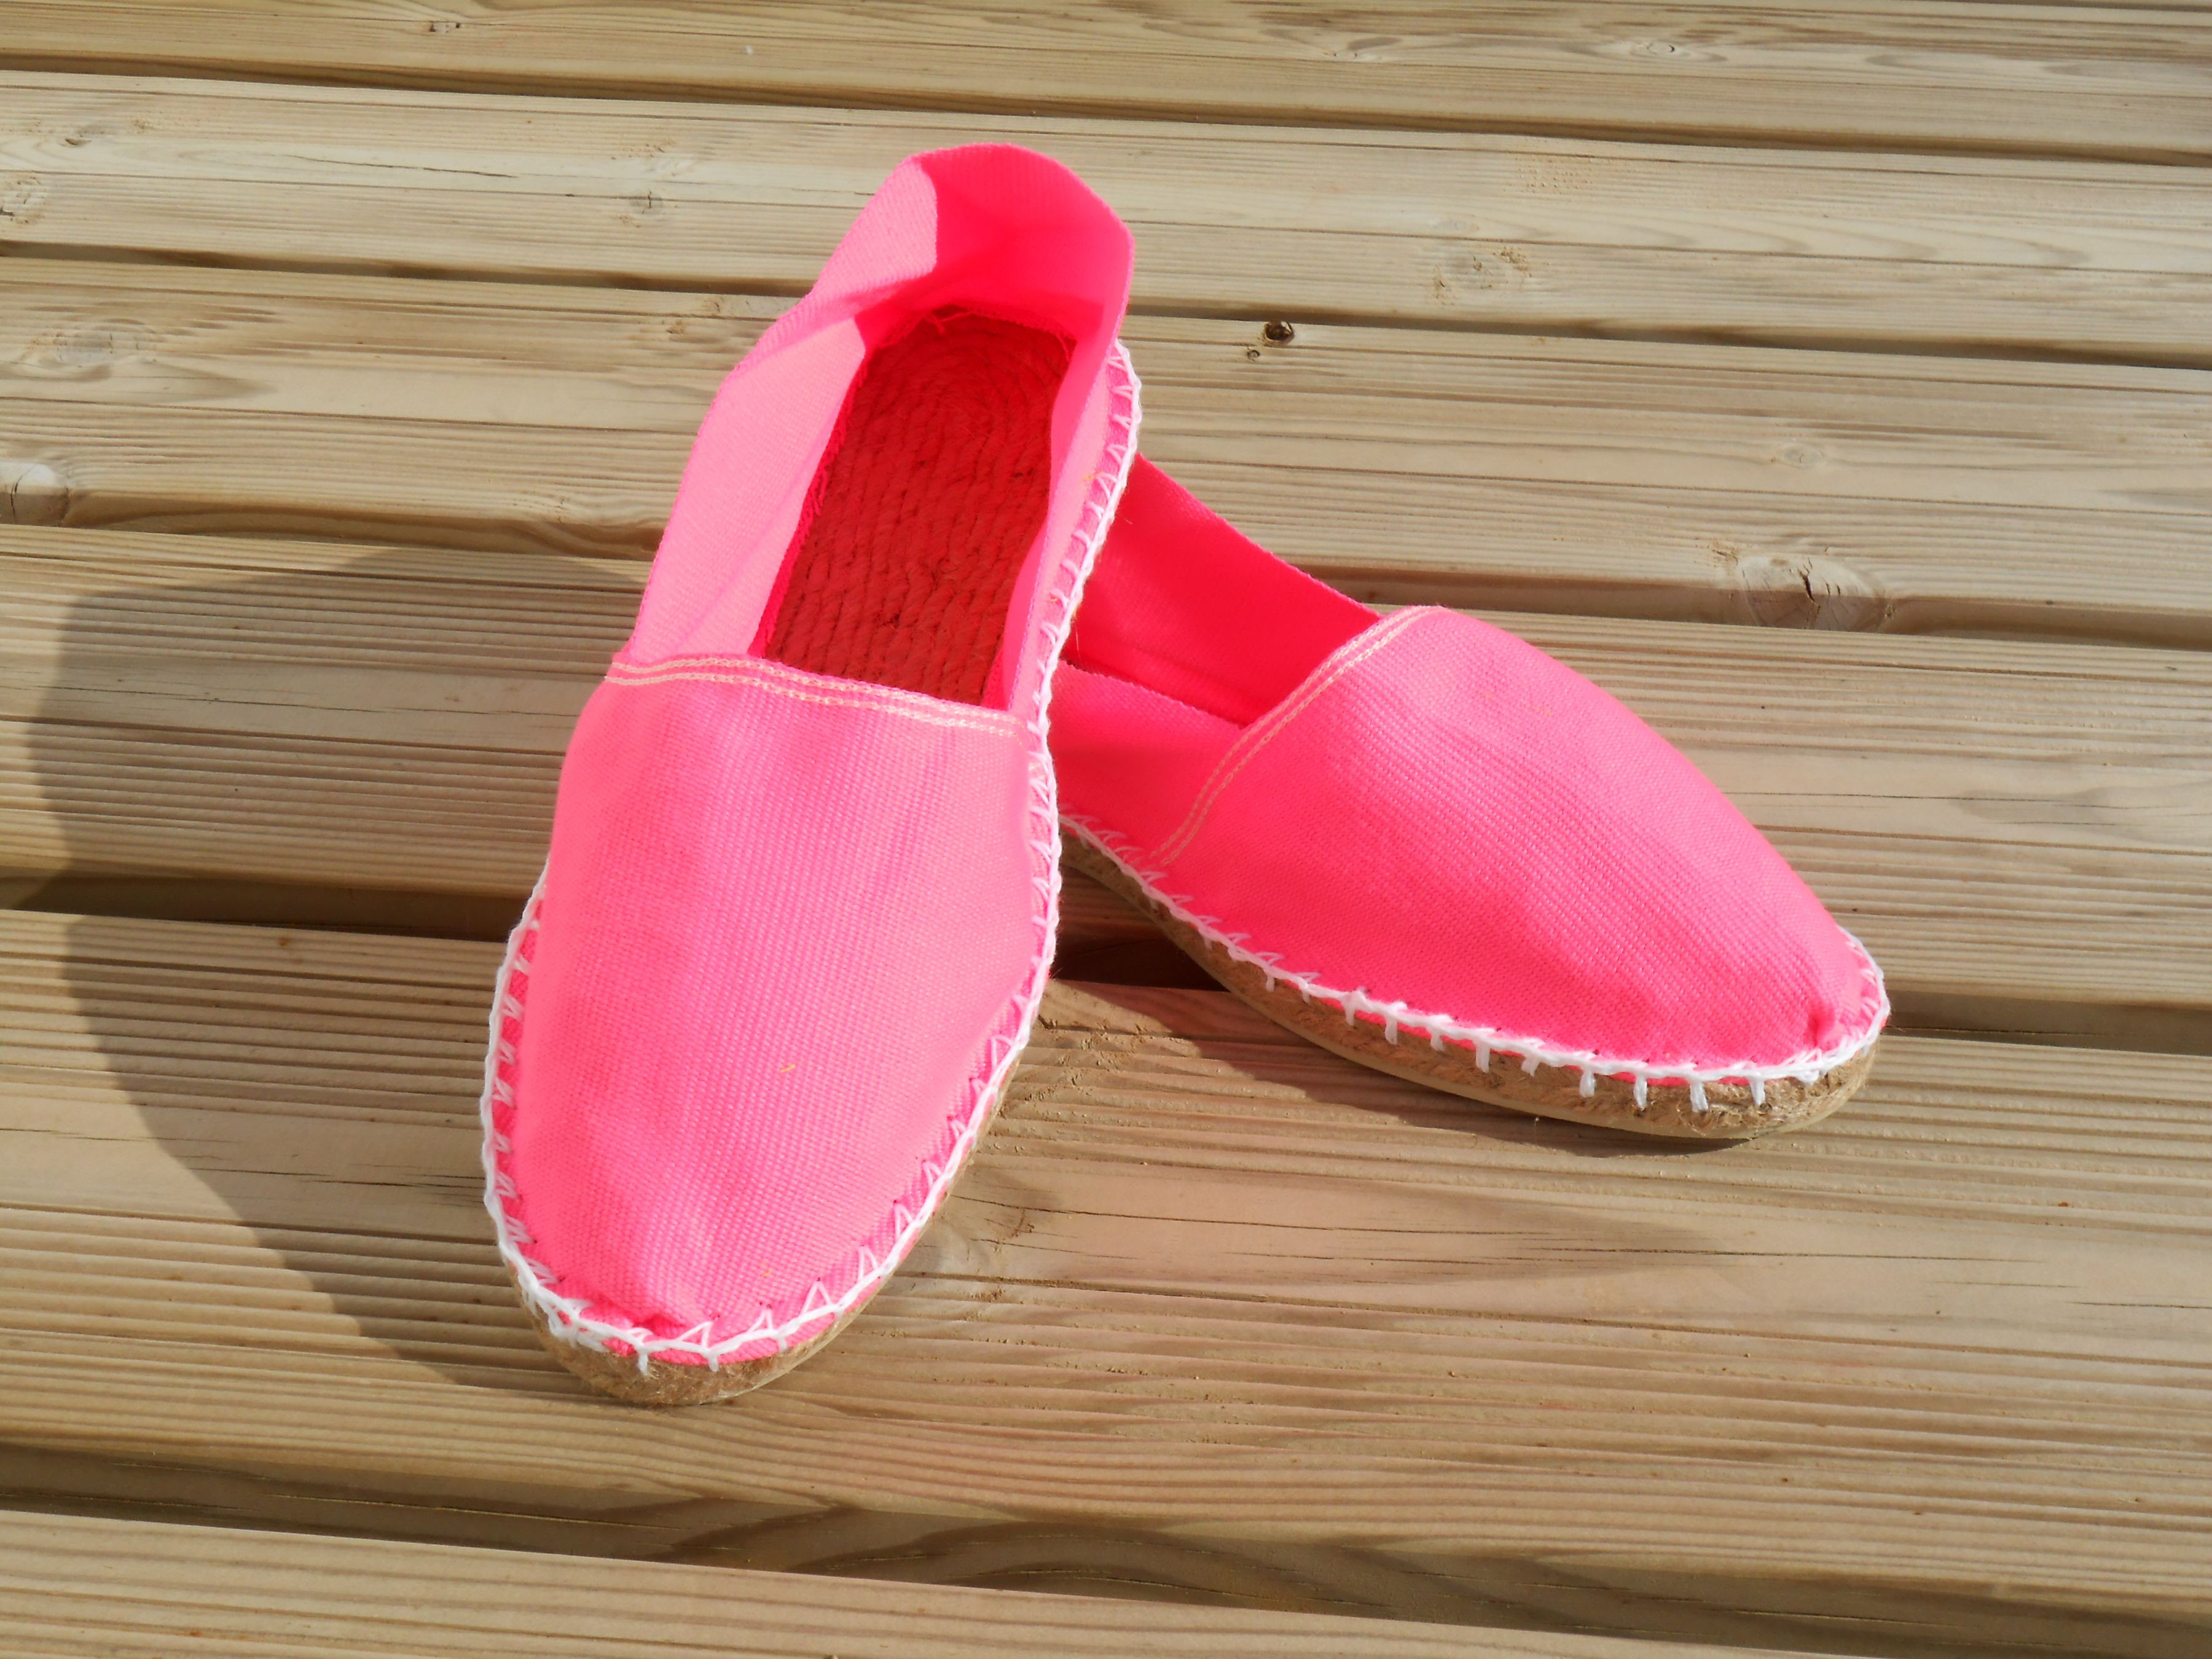 Espadrilles basques rose fluo taille 46